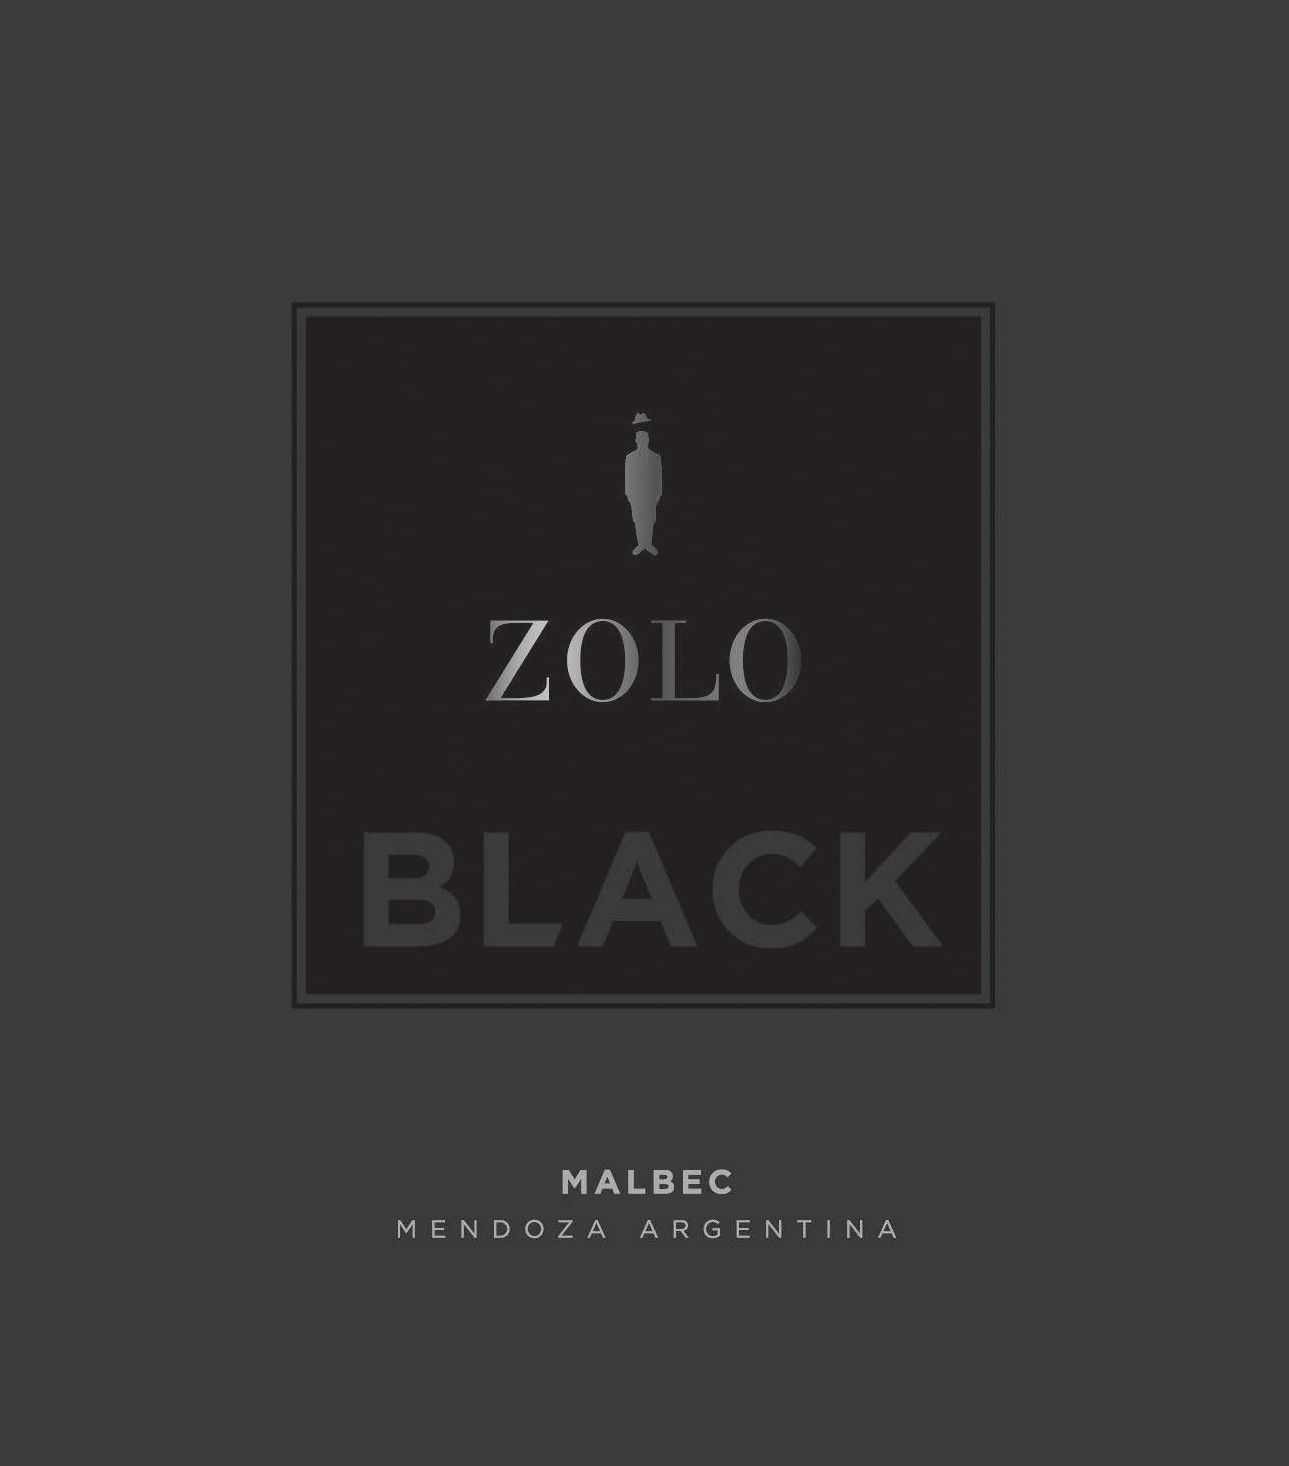 Zolo Black Malbec 2013 Front Label